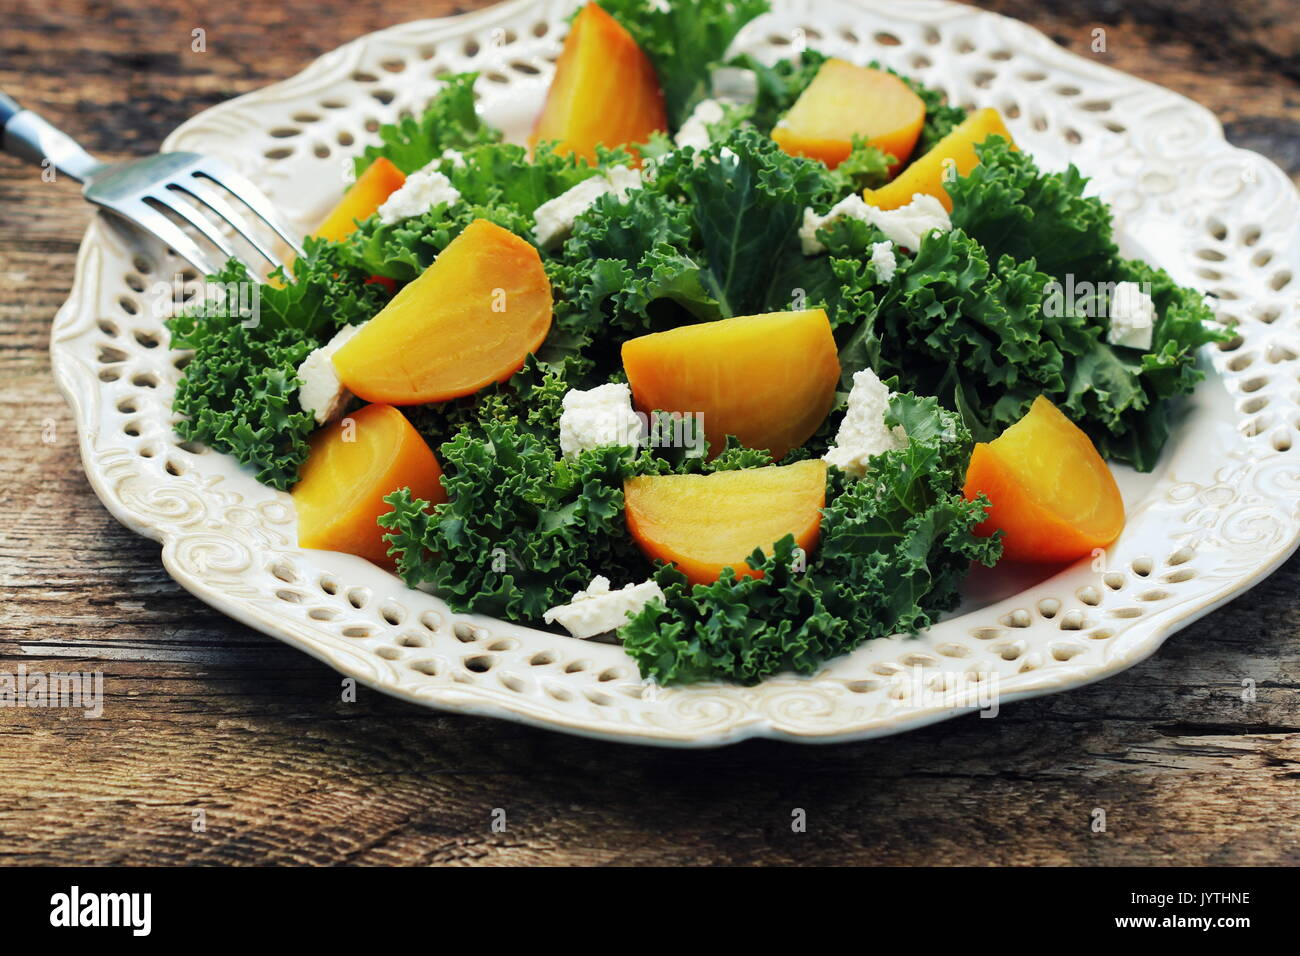 Healthy gollden beet salad with fresh kale lettuce, nuts, feta cheese on wooden background - Stock Image